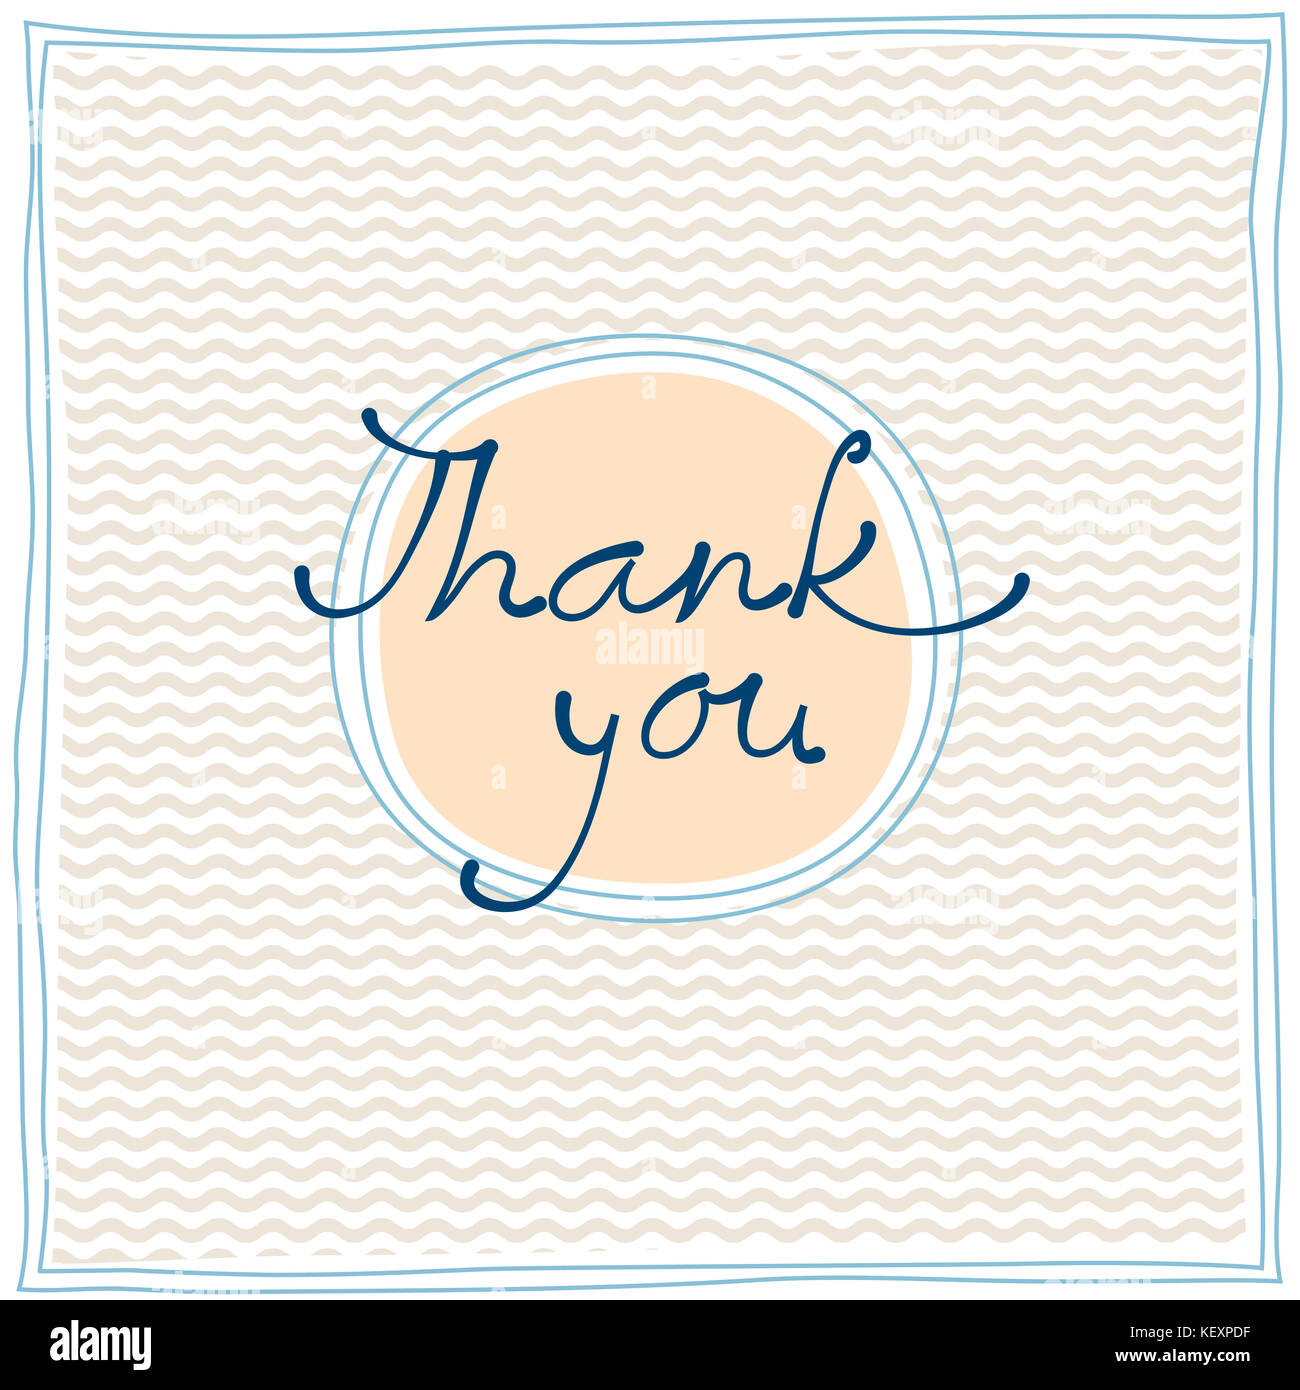 Thank you card design template simple greeting card elegant note thank you card design template simple greeting card elegant note label thanksgiving symbol sign spiritdancerdesigns Choice Image